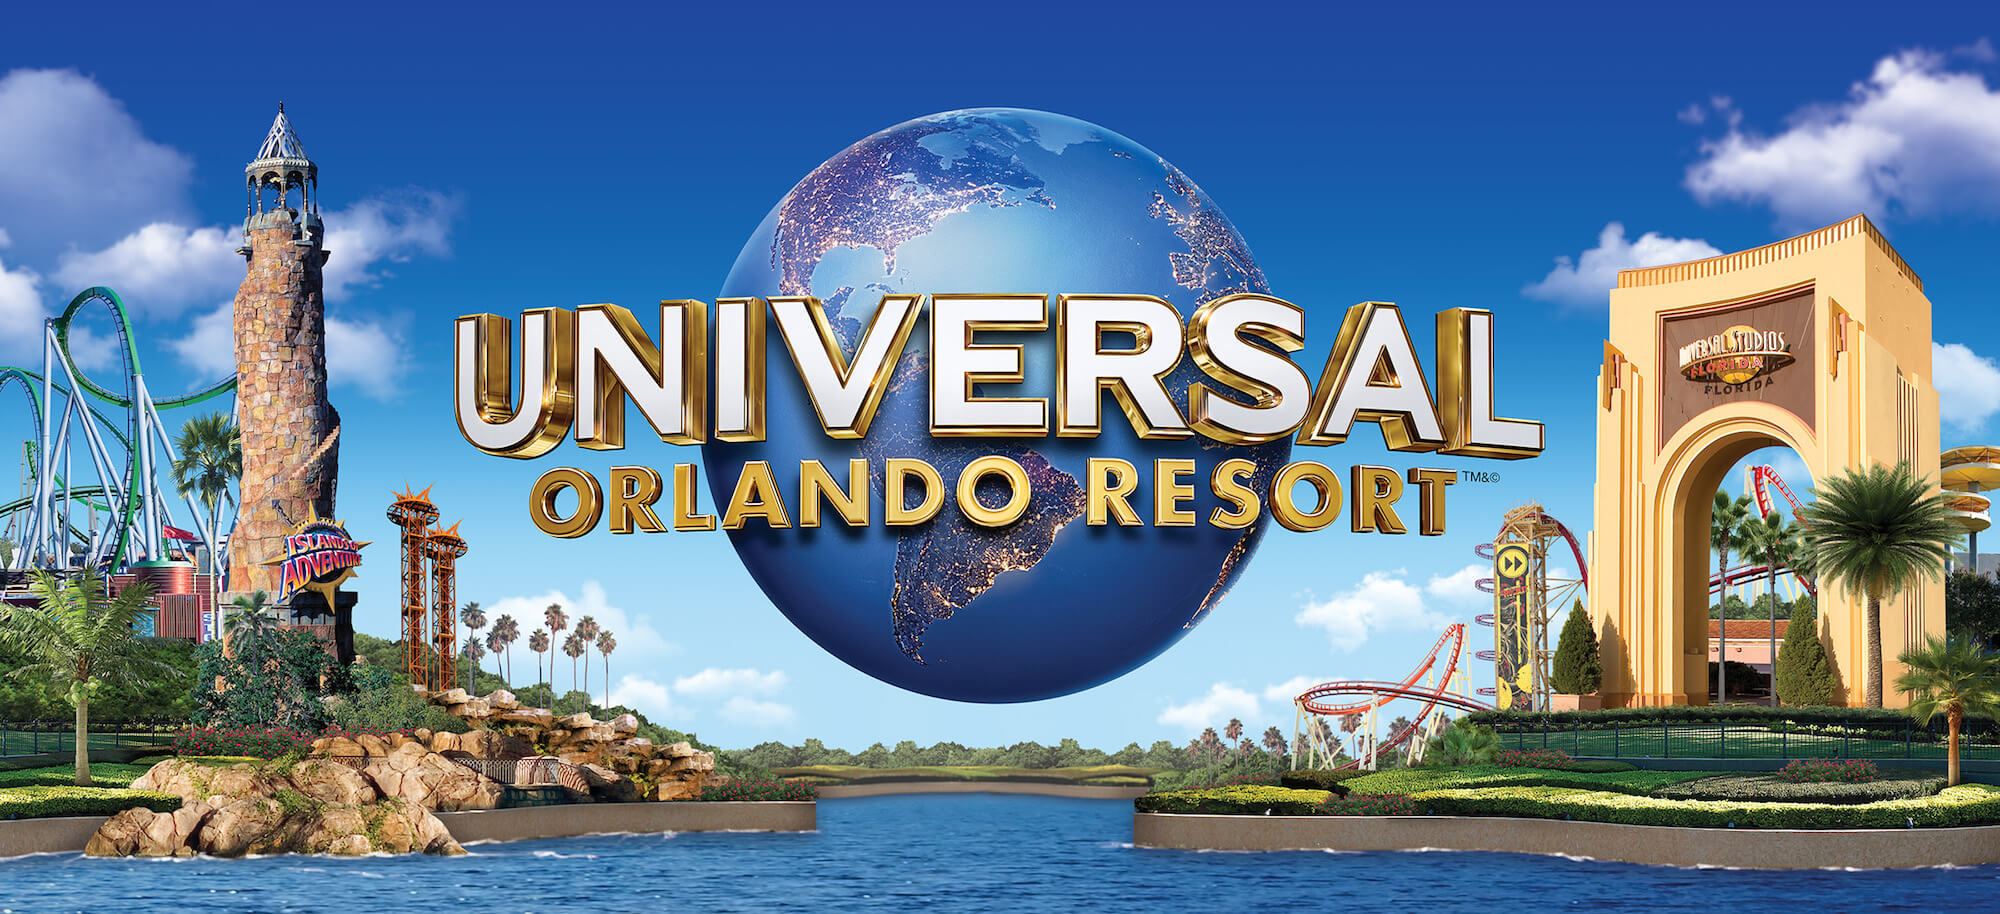 Theme Park Bits: Universal Orlando Raising Wages, Disney's Butterfly Conservation Efforts, and More